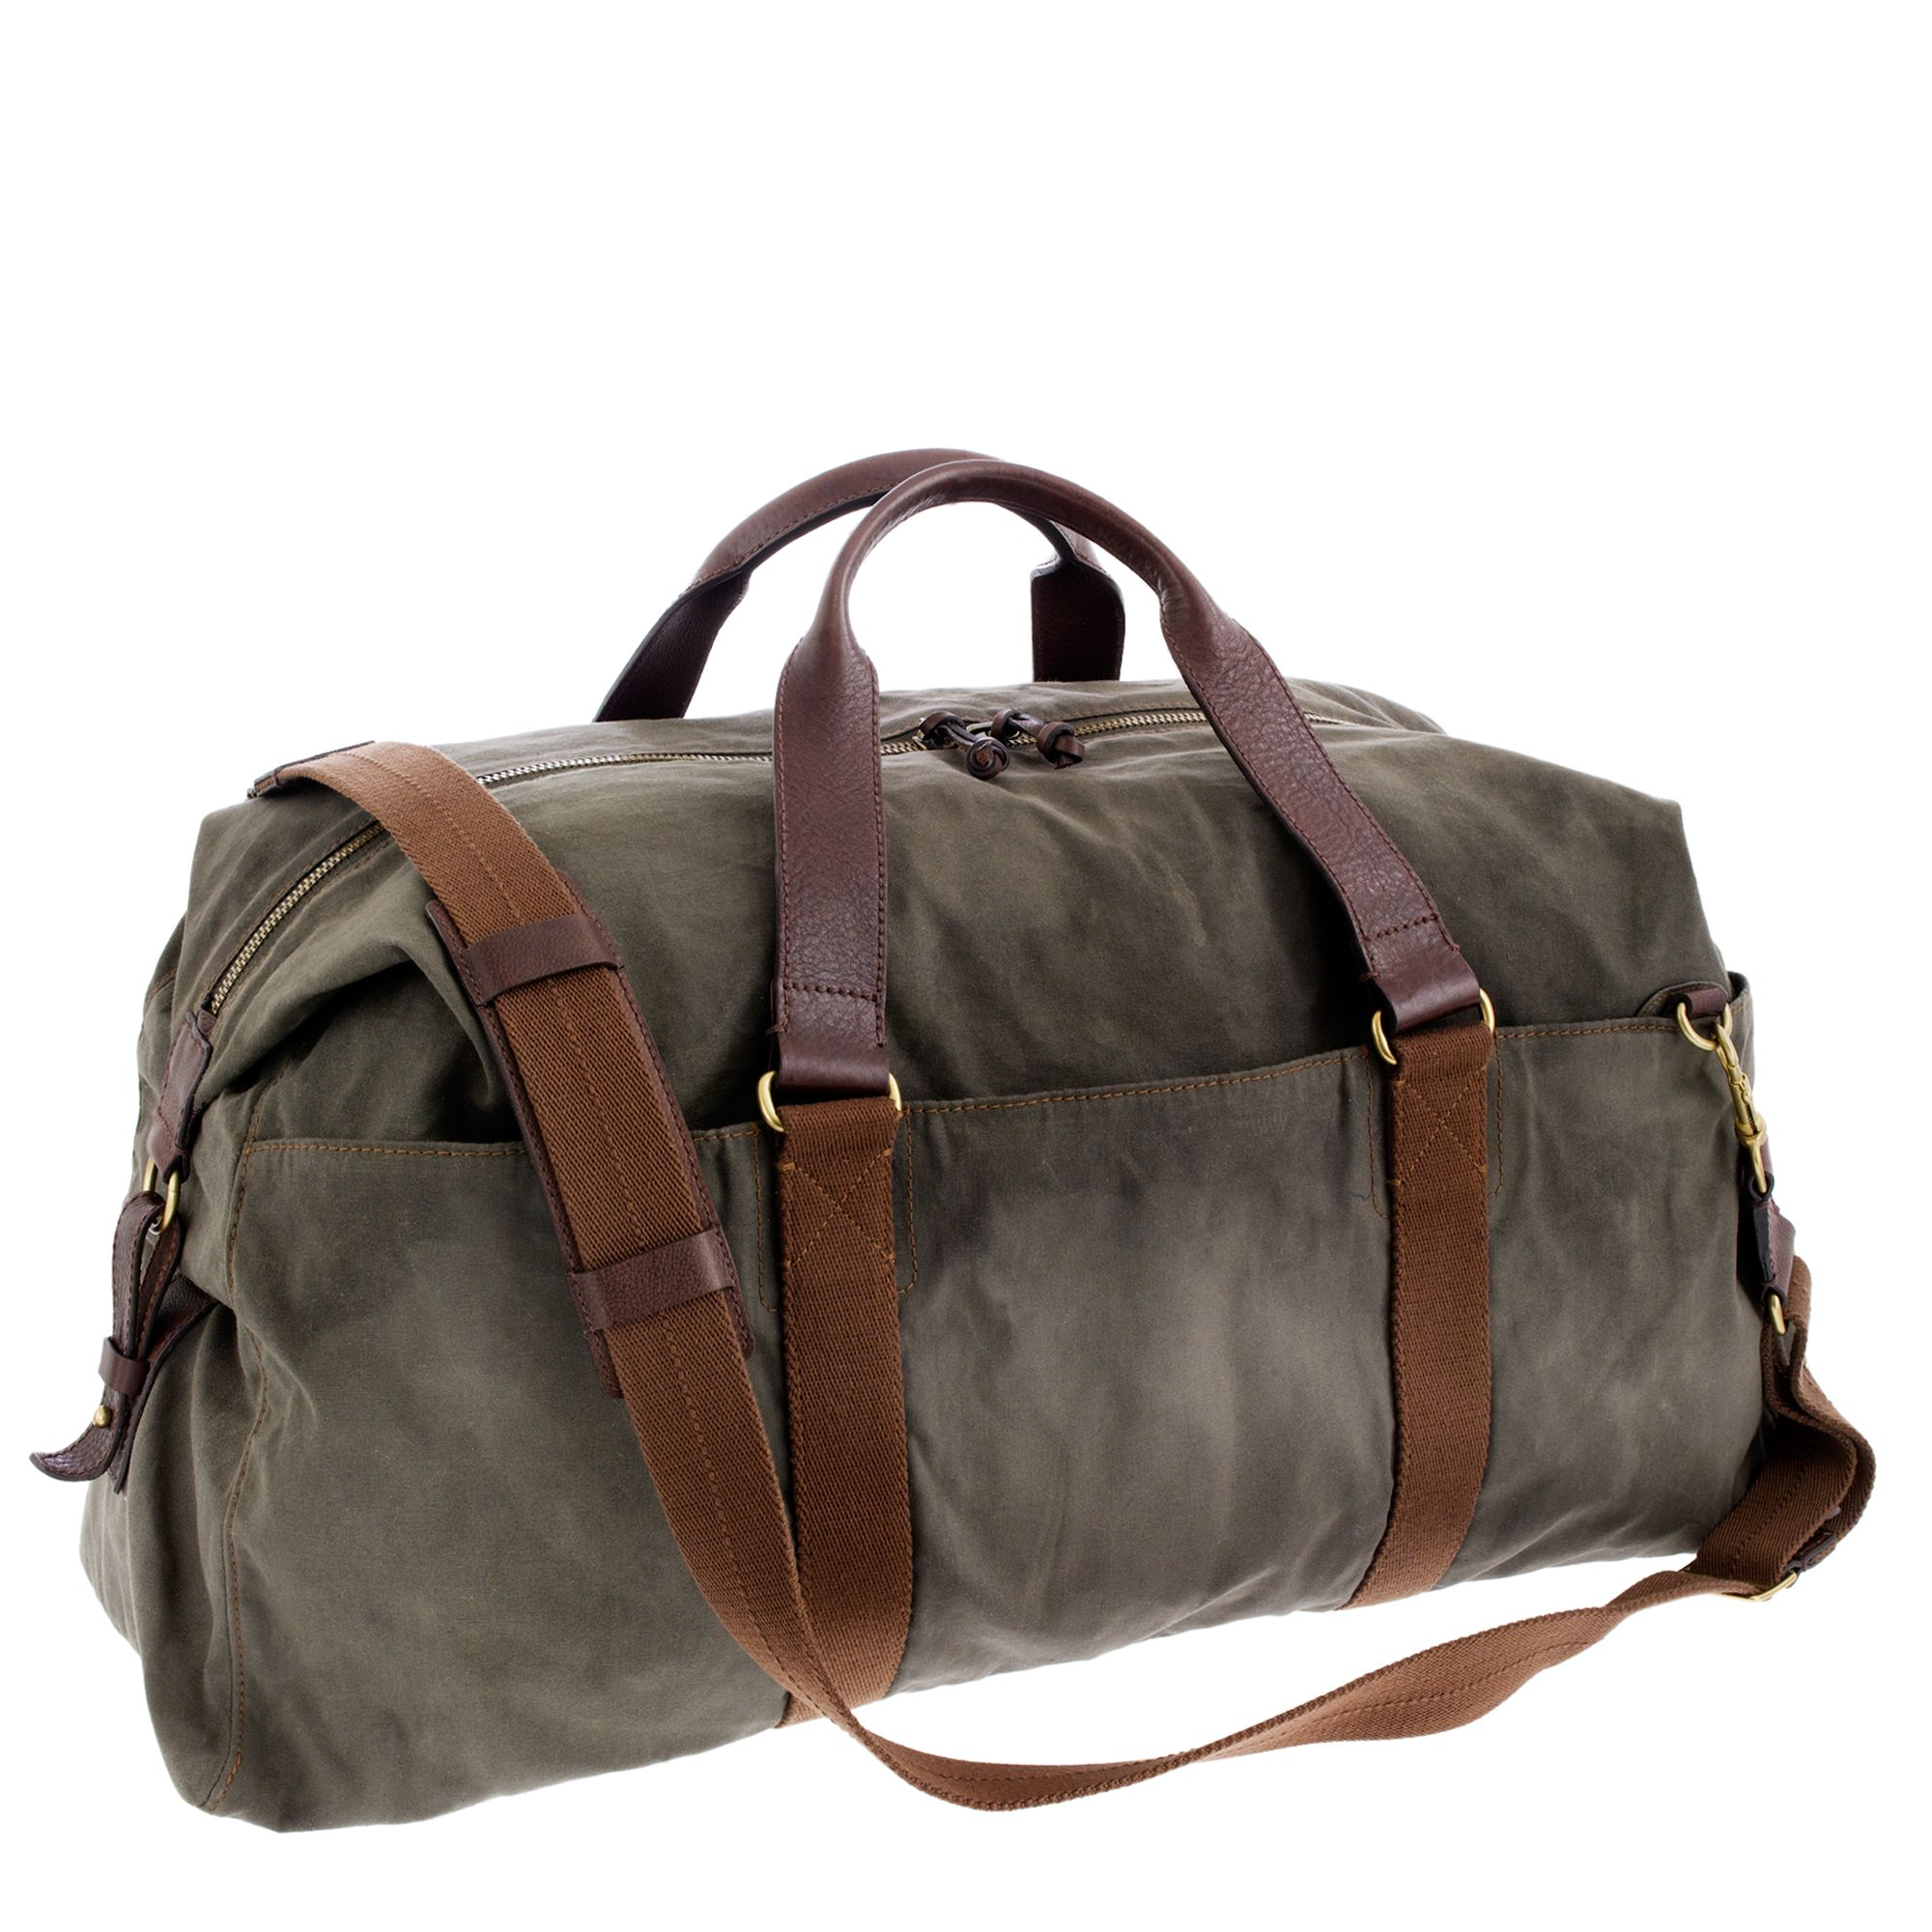 Shop Men's Totes And Duffle Bags At sisk-profi.ga Enjoy Free Shipping & Returns On All Orders.